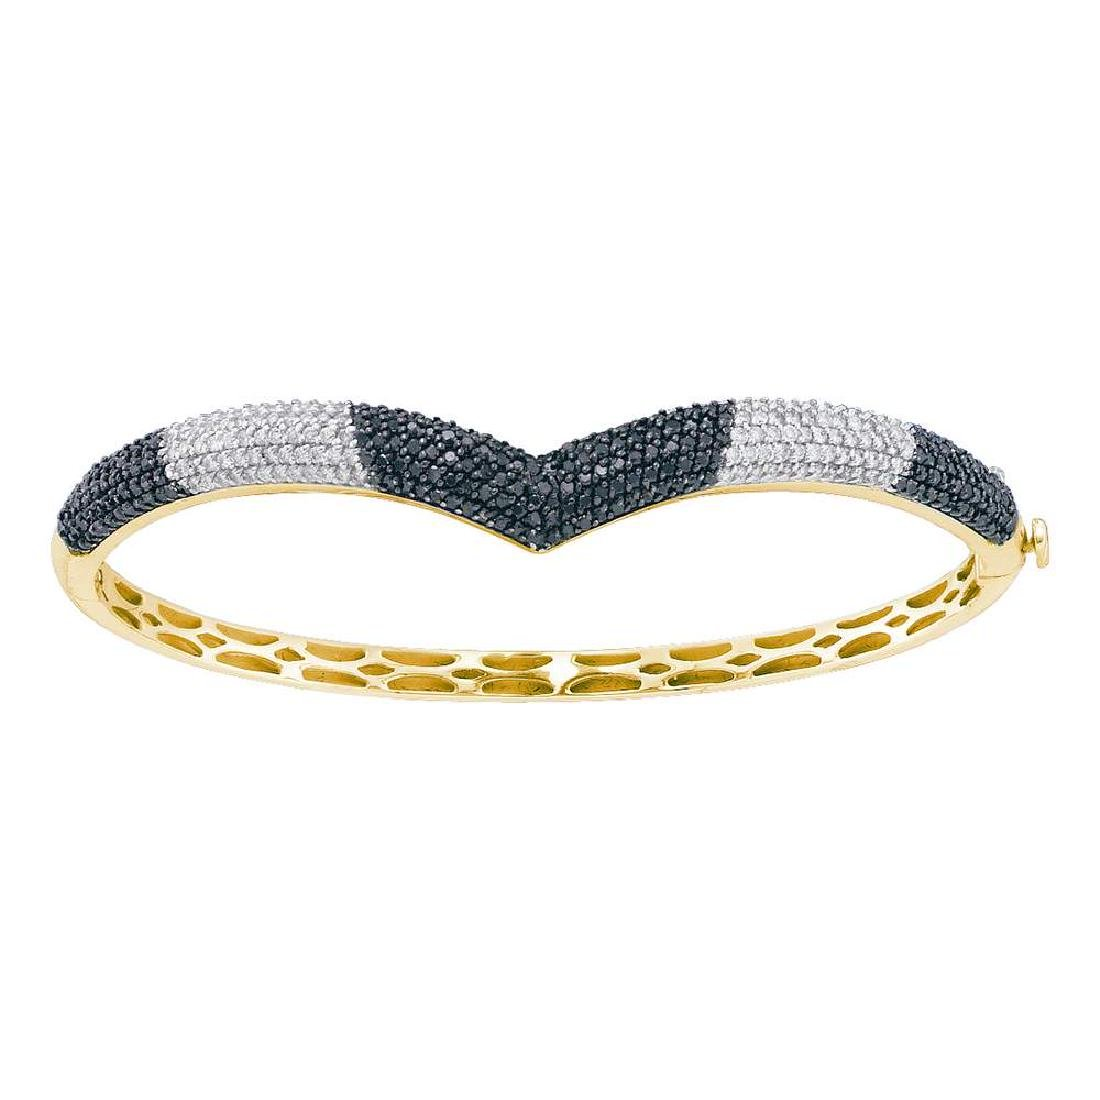 1.8 CTW Black Color Diamond Bangle Bracelet 14KT Yellow